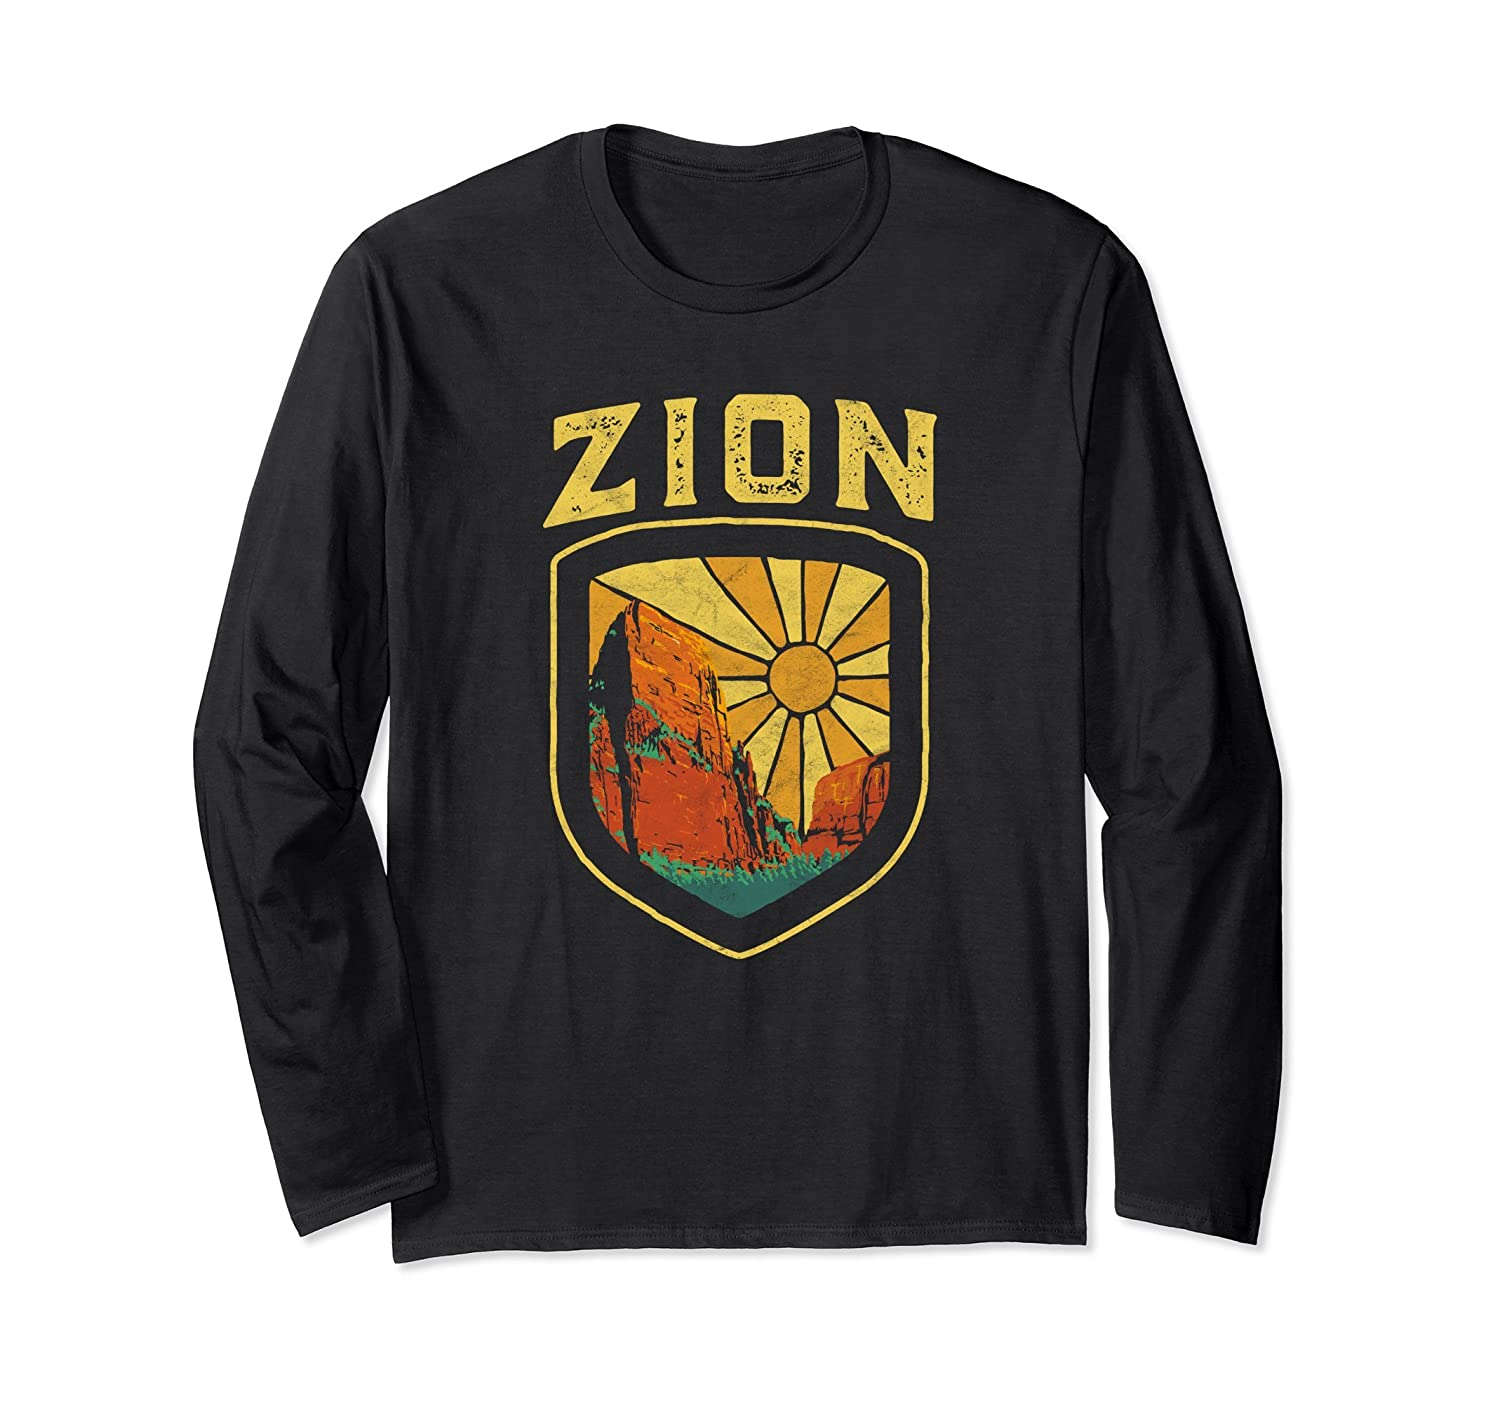 Zion National Park Utah Long Sleeve Shirt - Retro Vintage-alottee gift